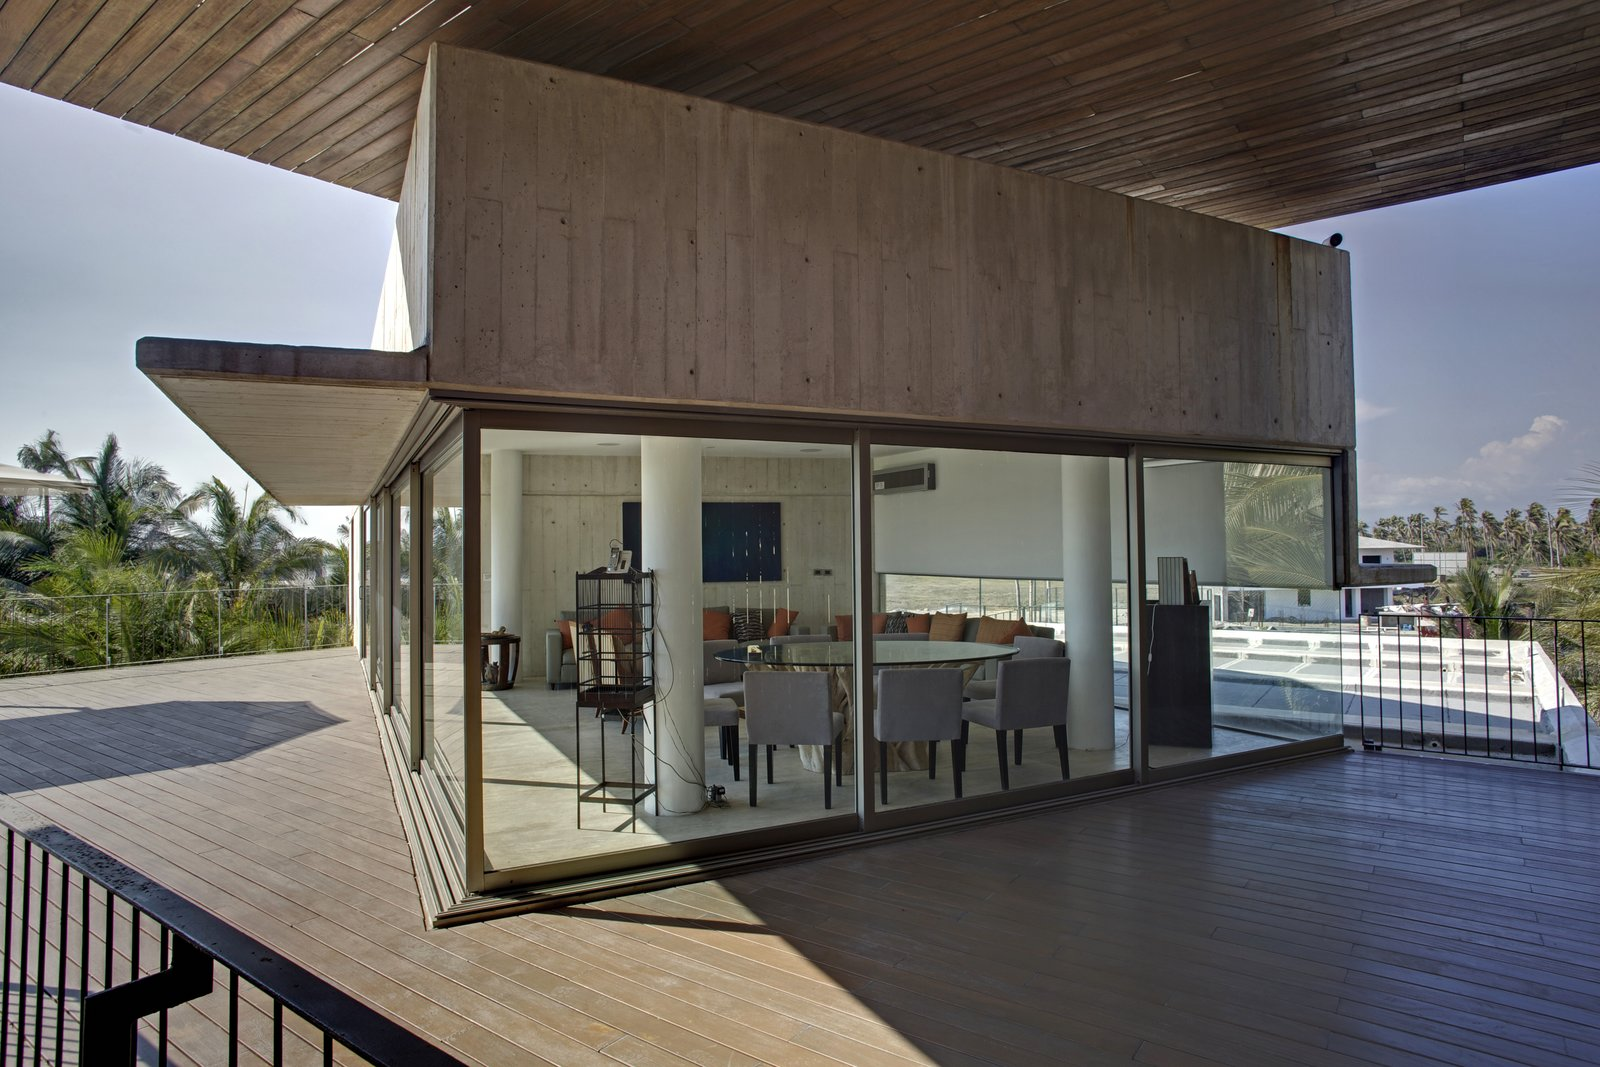 Living Room and Travertine Floor Terrace Level 3  La Caracola Beach House by PAUL CREMOUX studio